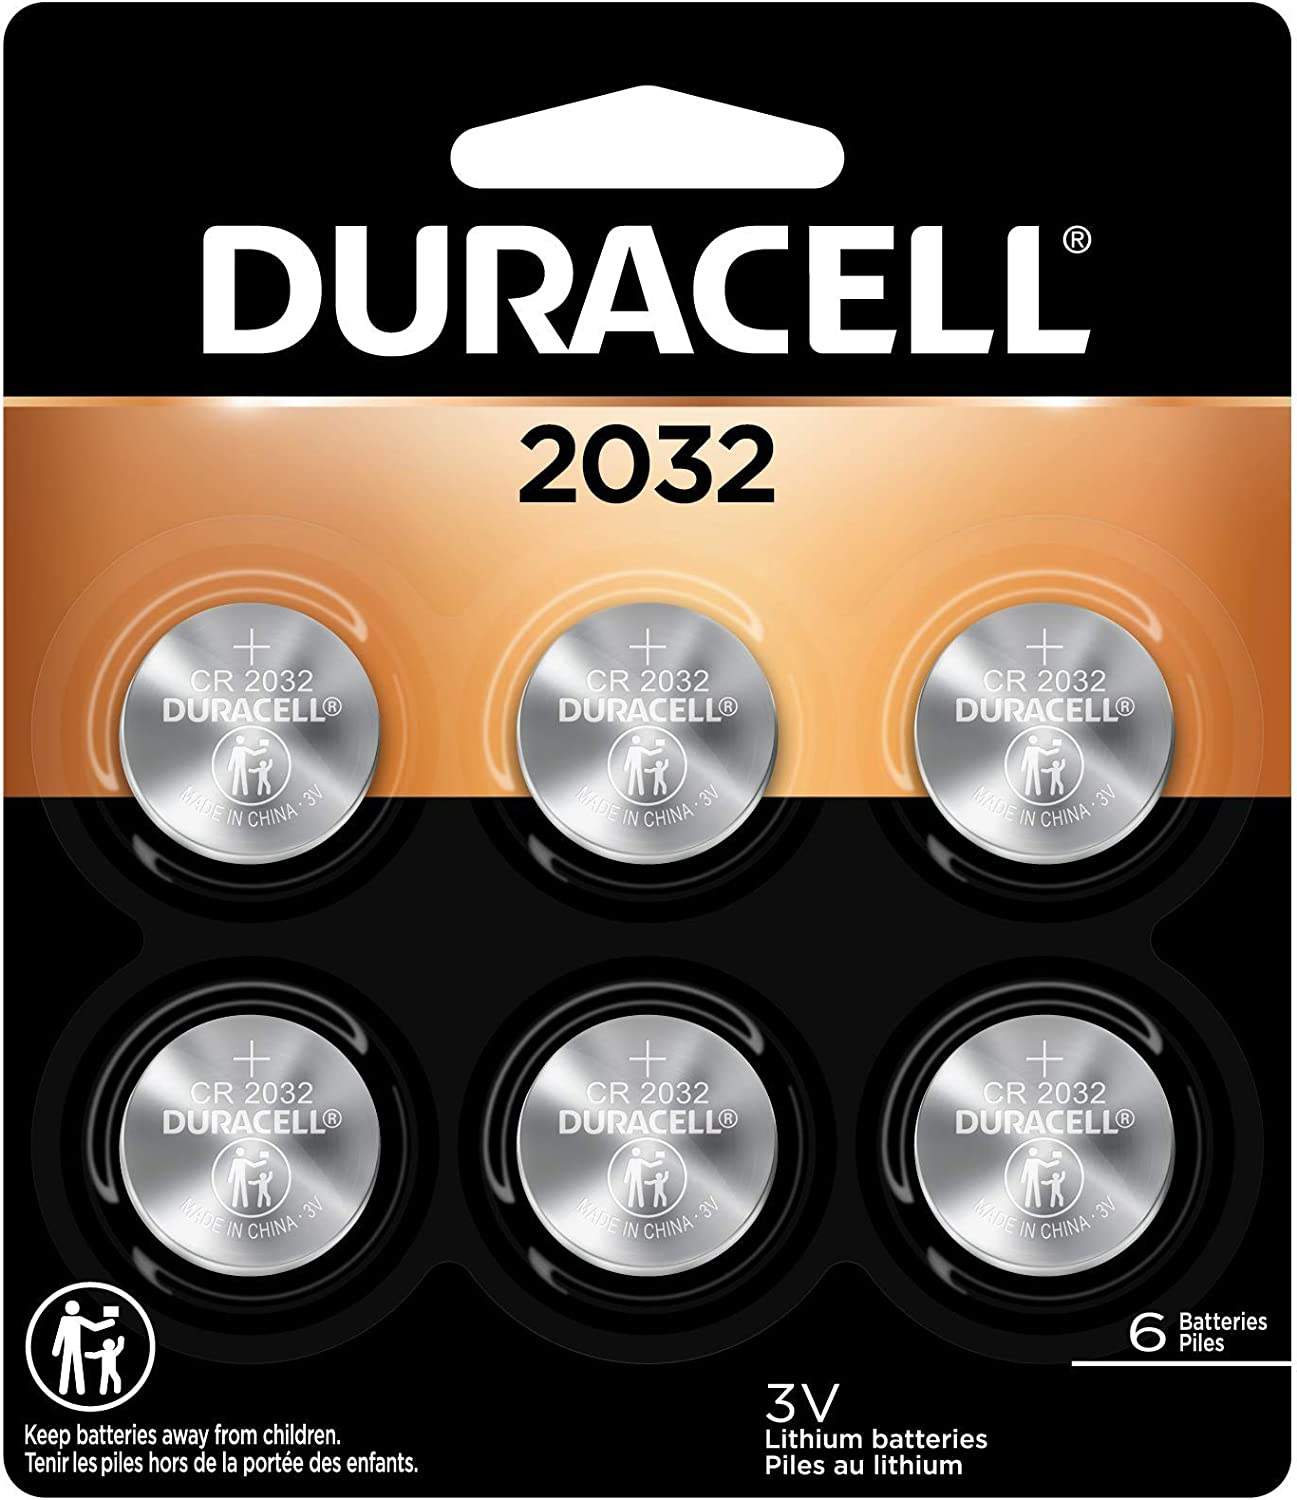 Duracell - 2032 3V Lithium Coin Battery - long lasting battery - 6 count